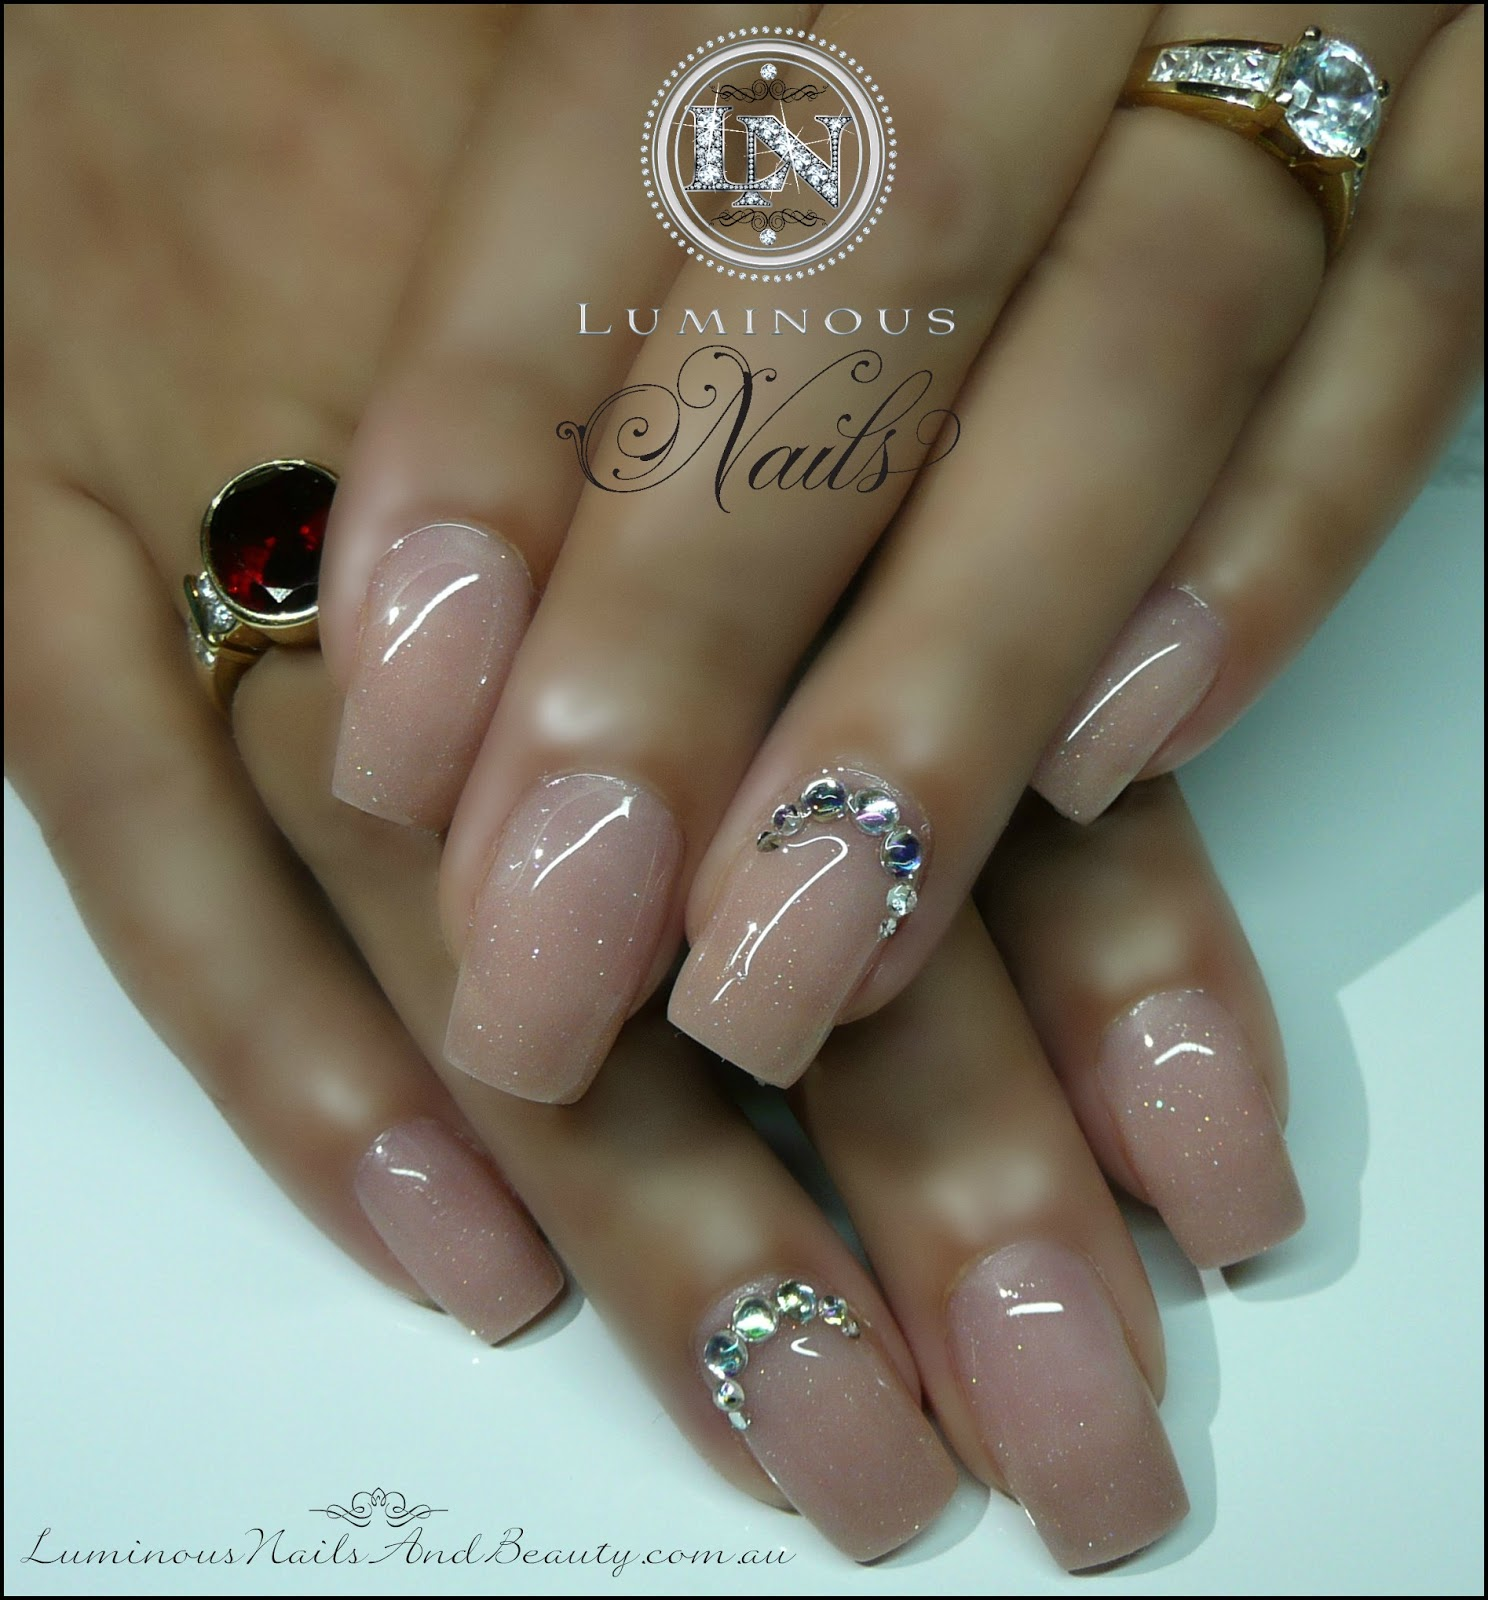 Luminous+Nails+and+Beauty,+Gold+Coast+Queensland.+Acrylic+&+Gel+Nails